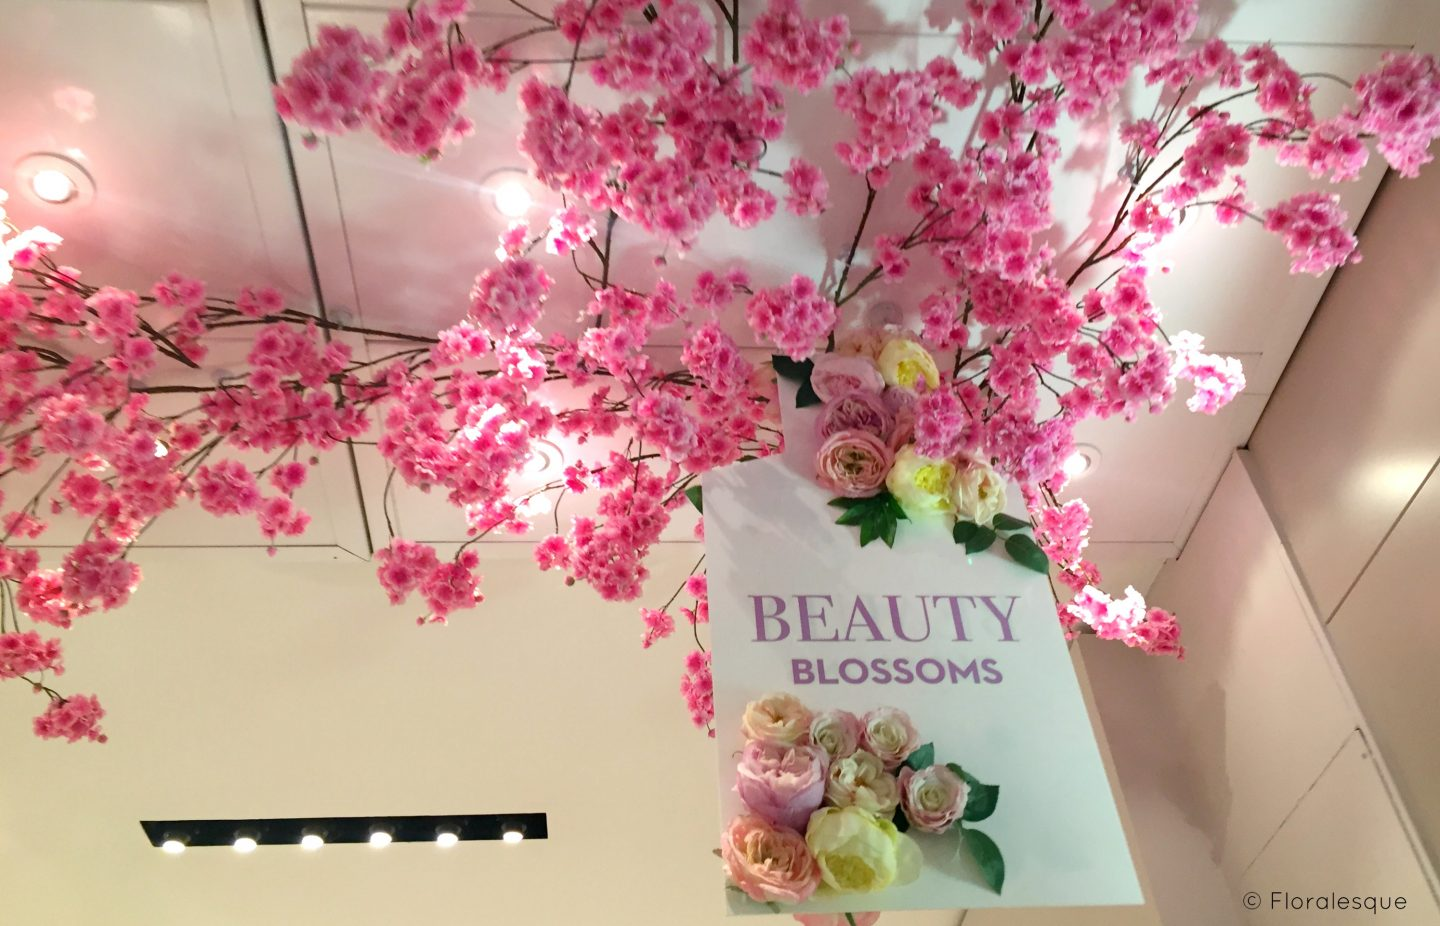 Brown Thomas Beauty Blossoms Garden Pop Up Floralesque